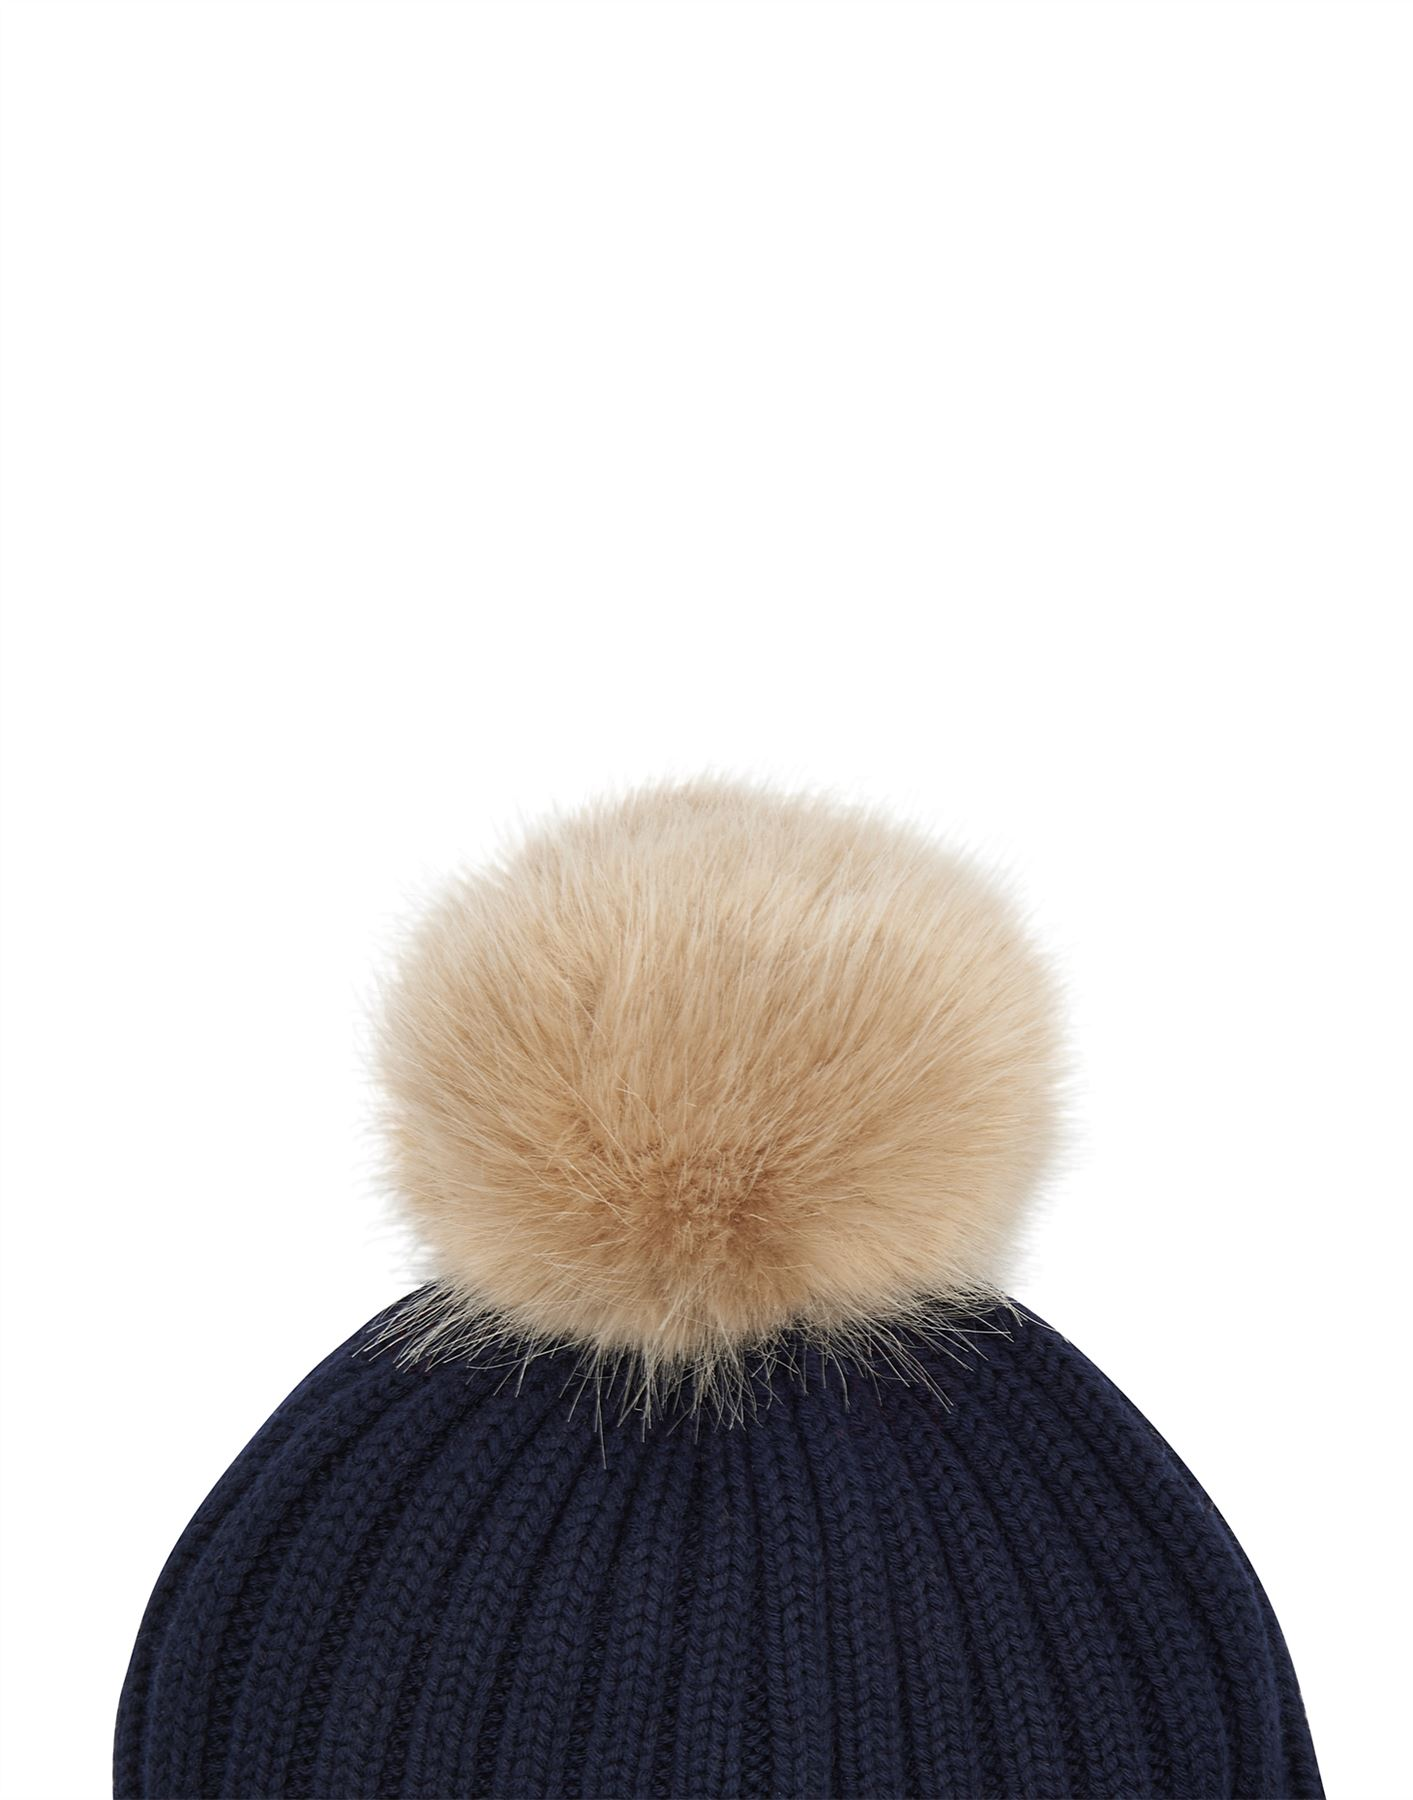 Joules POP-A-POM Bobble Hat - AW17 (X)